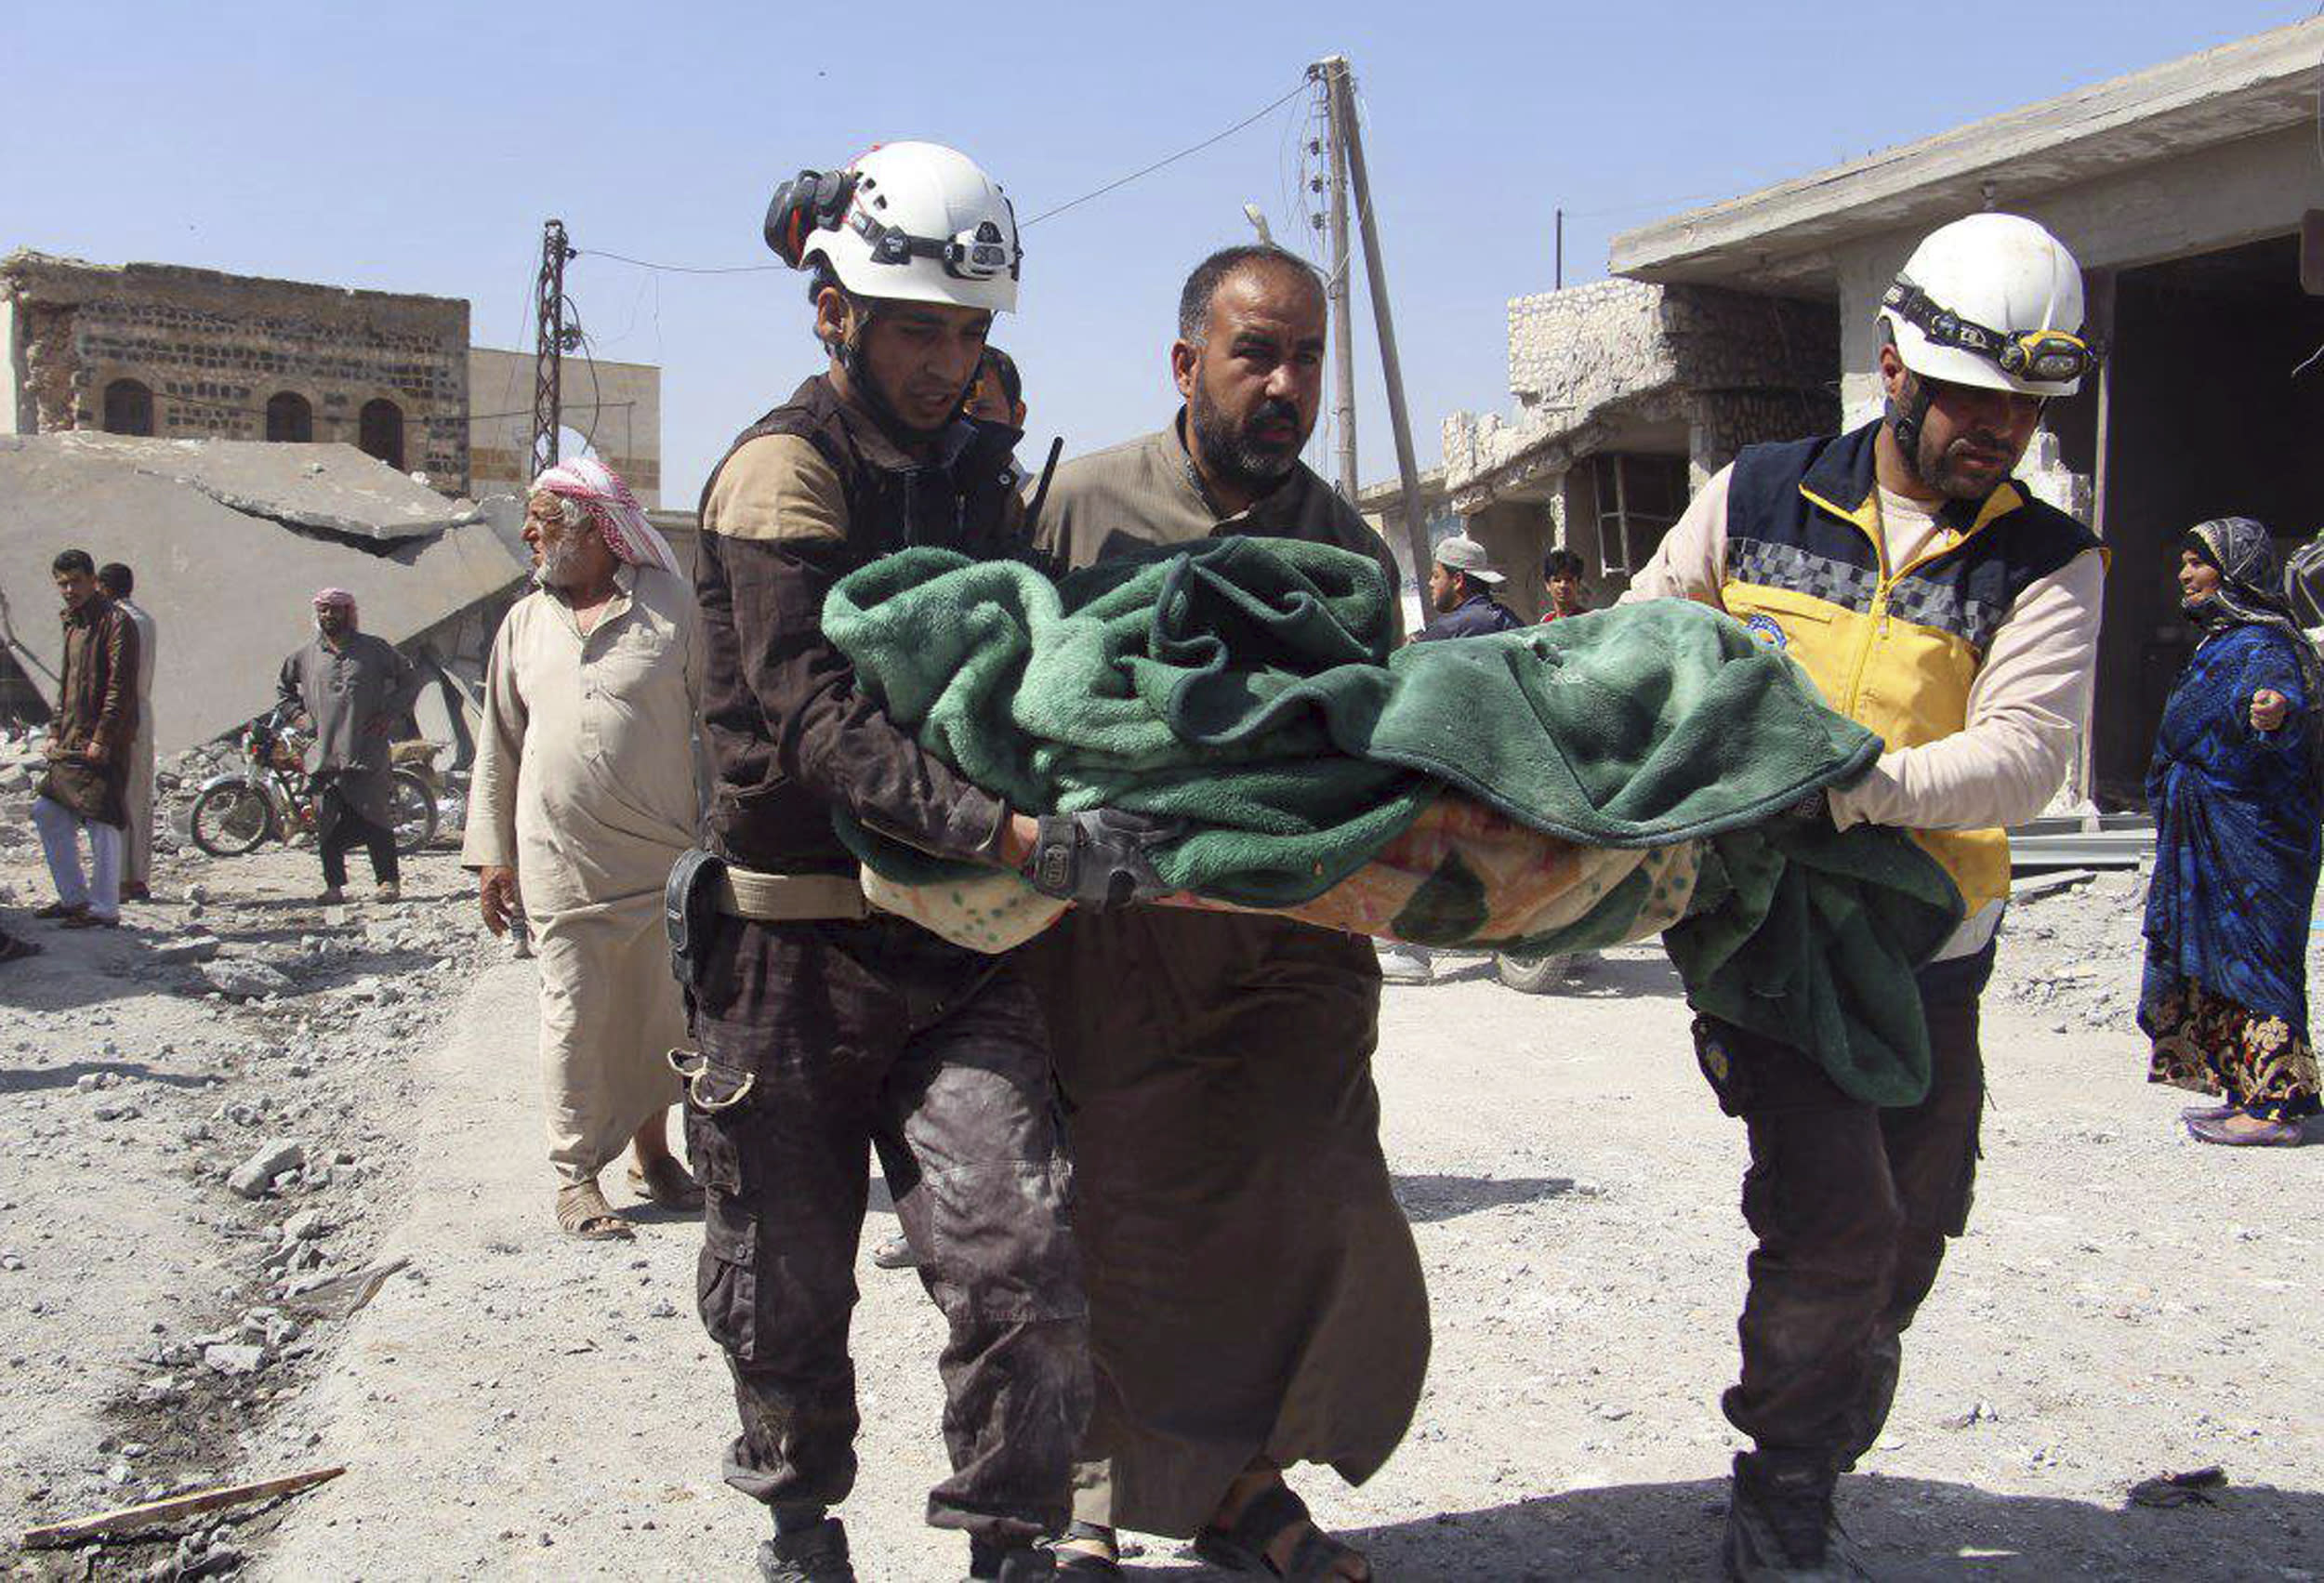 This photo provided by the Syrian Civil Defense group known as the White Helmets, shows members of the Syrian Civil Defense workers carrying a victim after a deadly airstrike hit a market killing several people in the village of Ras el-Ain, in the northwestern province of Idlib, Syria, Tuesday, May 7, 2019. Opposition activists say government forces have intensified their bombardment of rebel-held towns and villages in northwestern Syria. (Syrian Civil Defense White Helmets via AP)